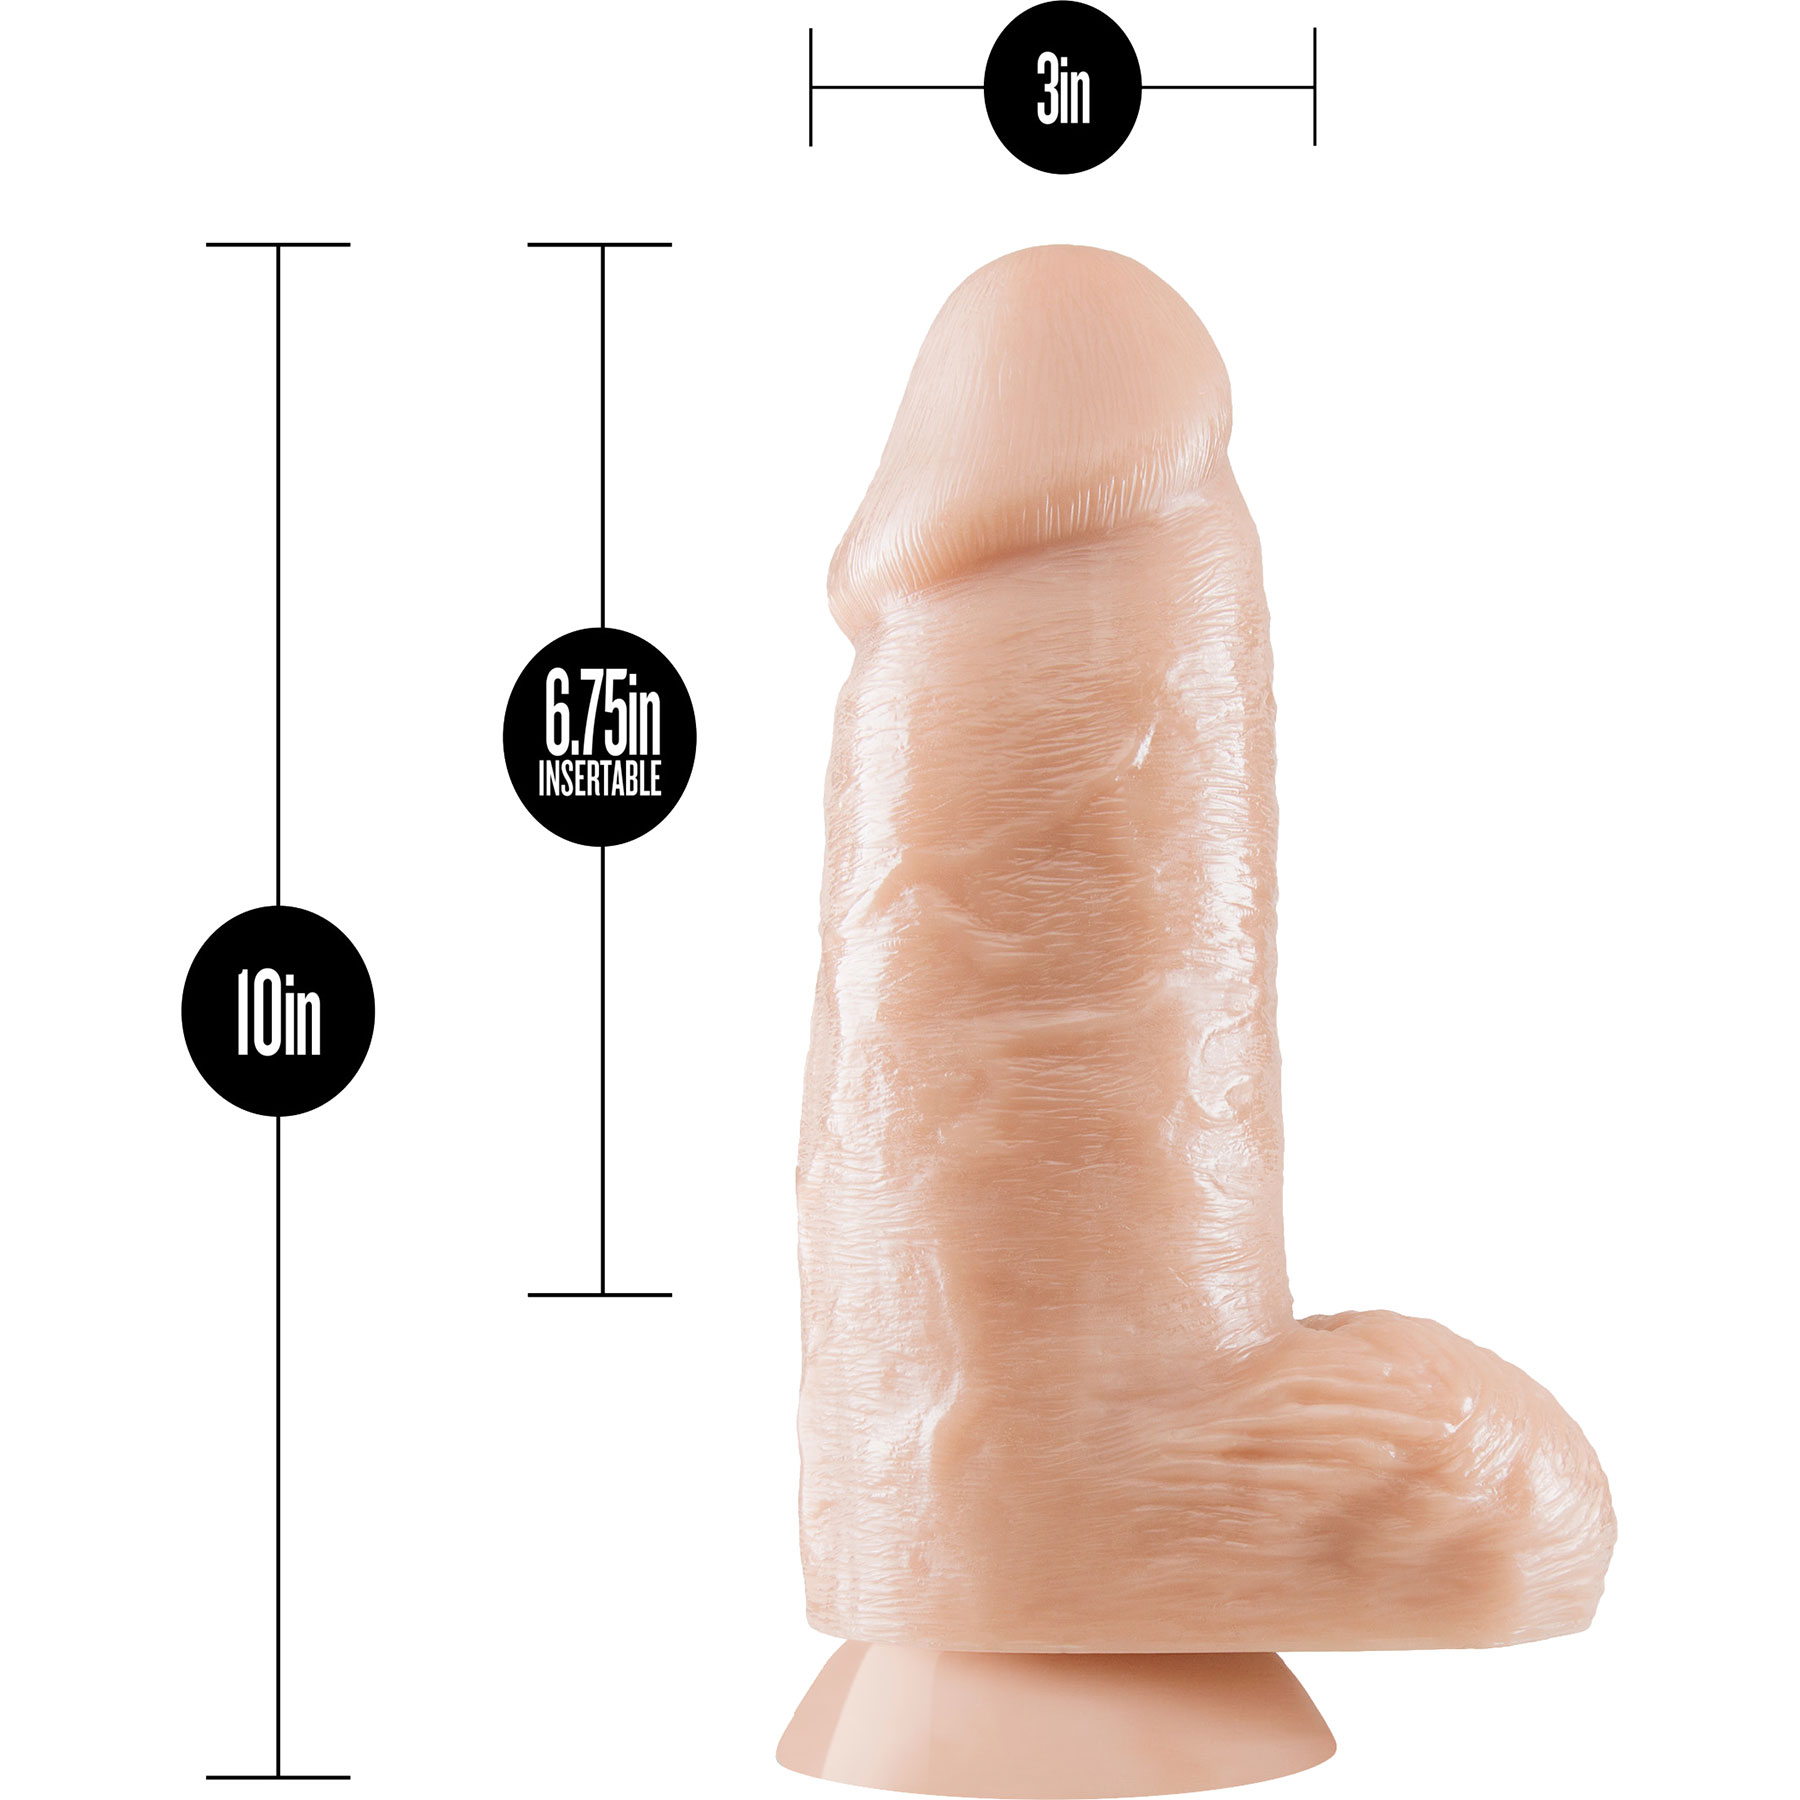 Dr. Skin Dr. Chubbs Dildo With Balls & Suction Cup - Measurements